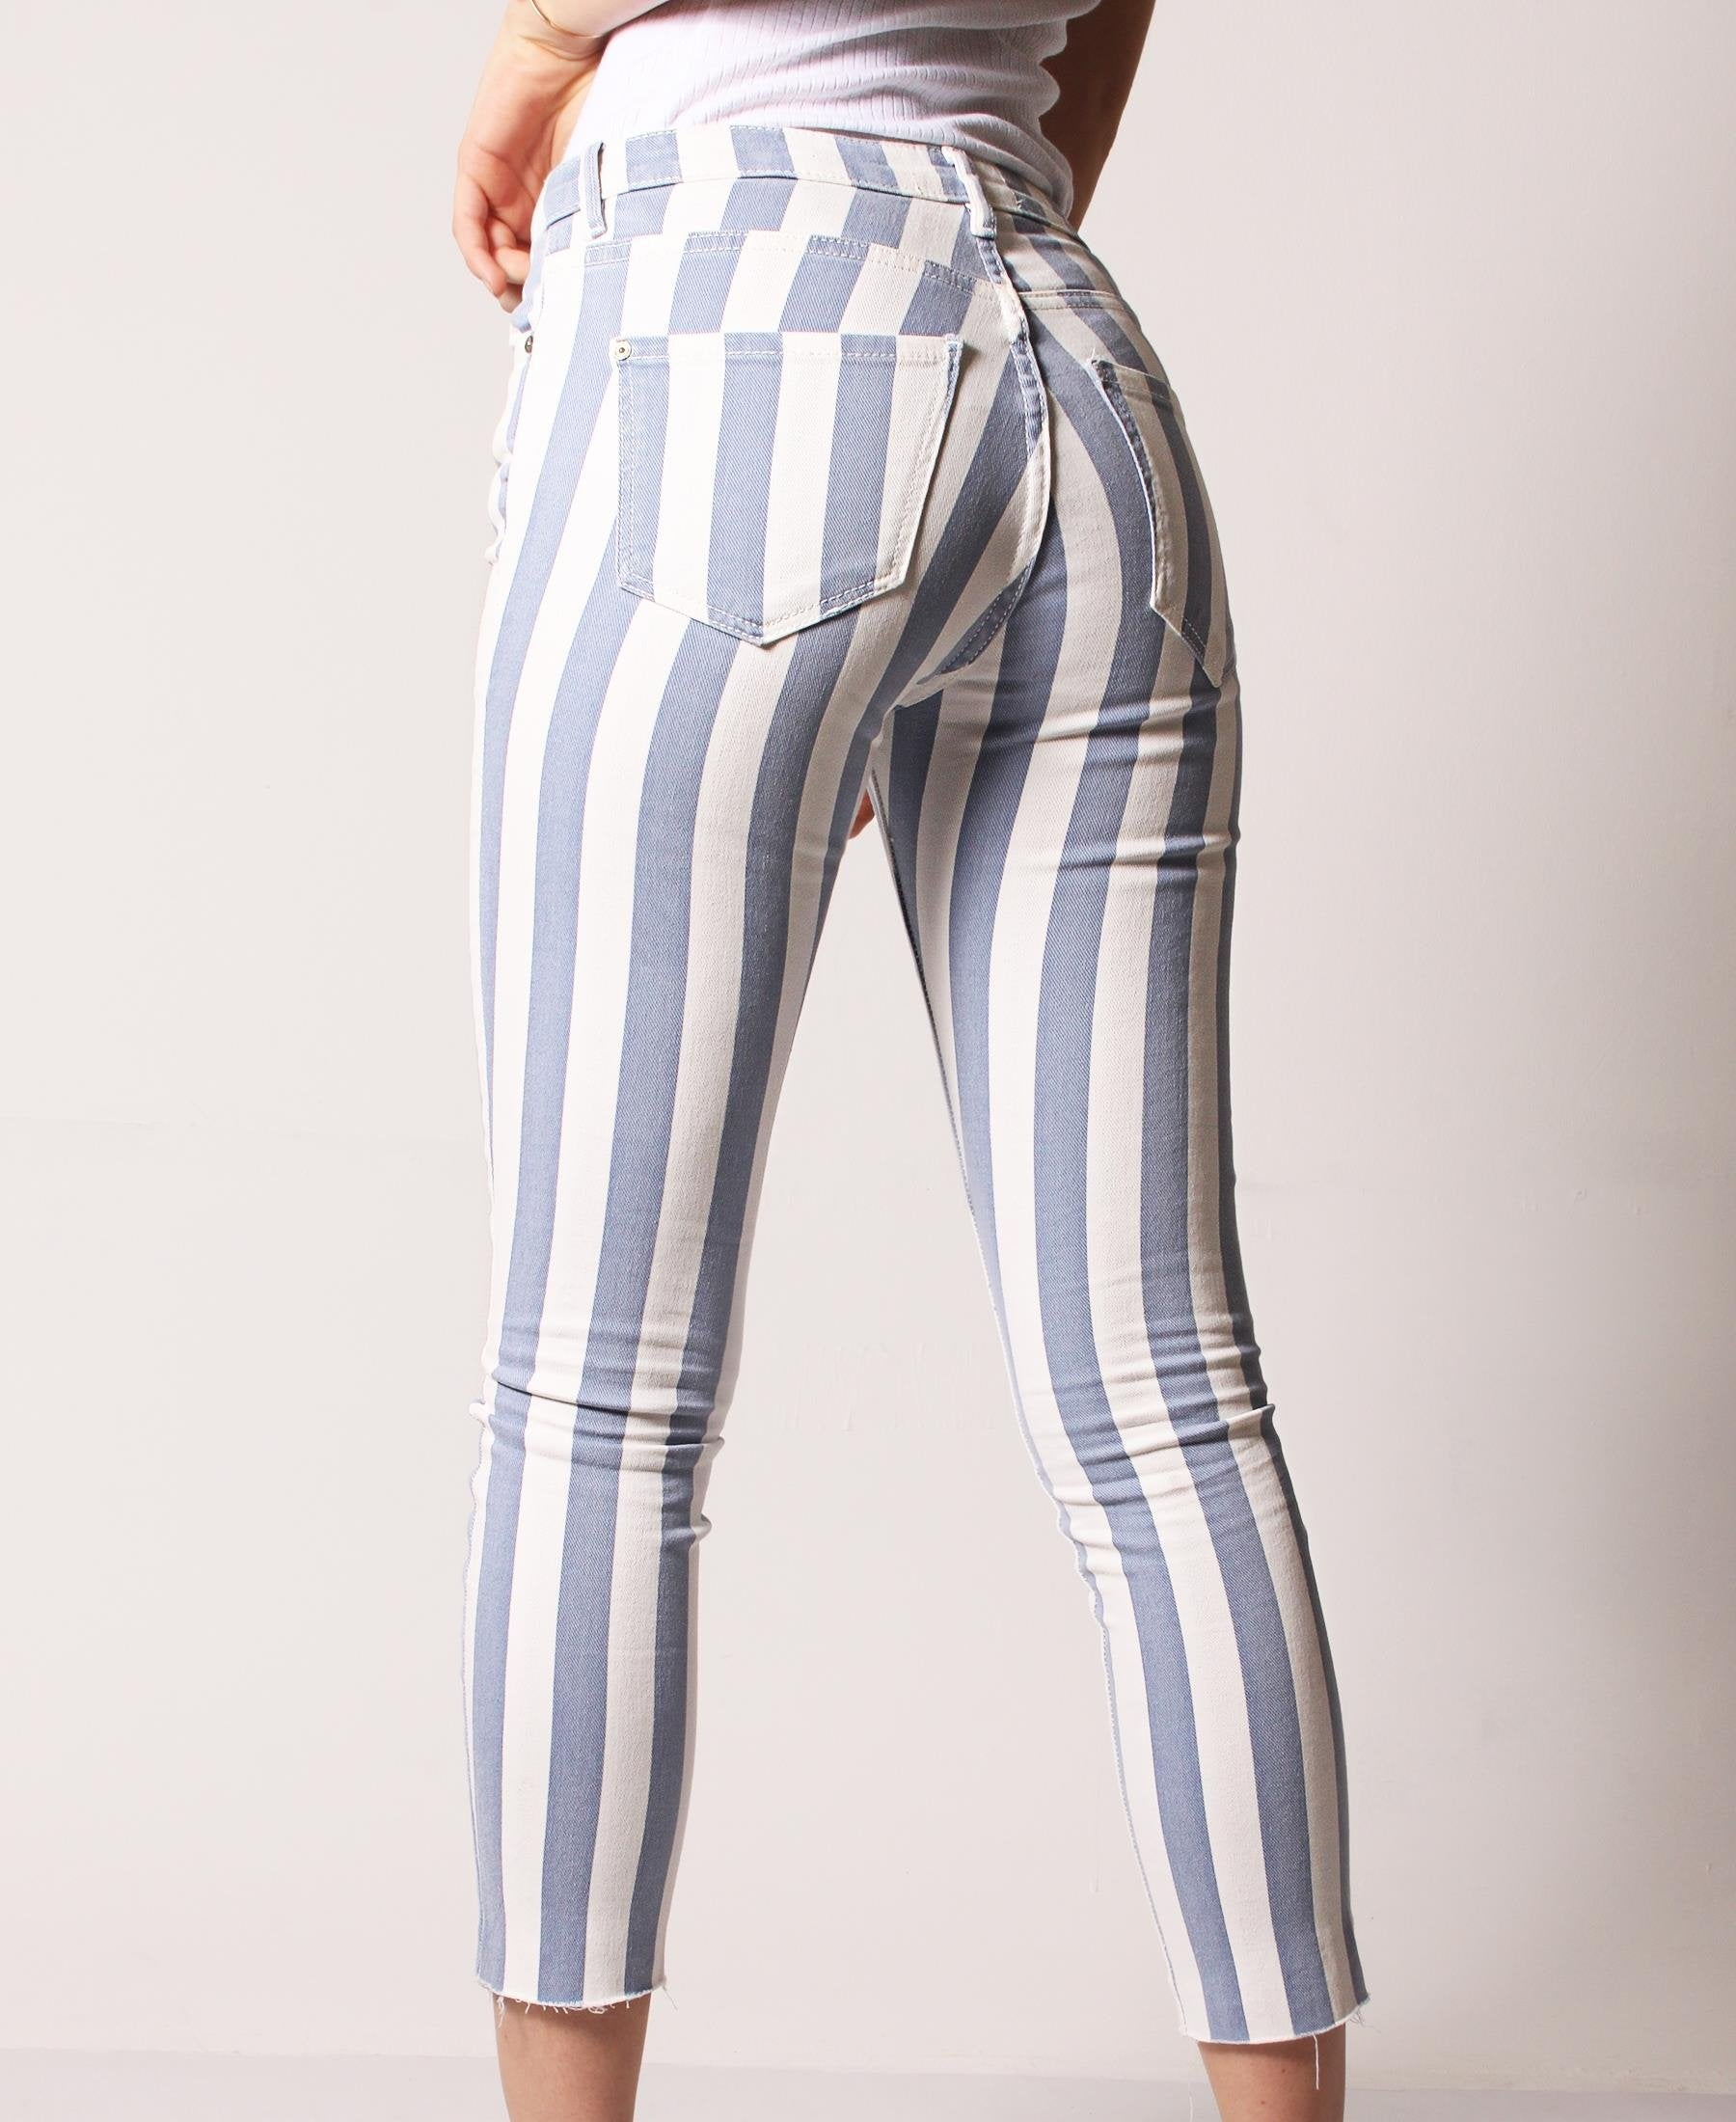 Mid Rise Striped Skinny Denim - Blue-White